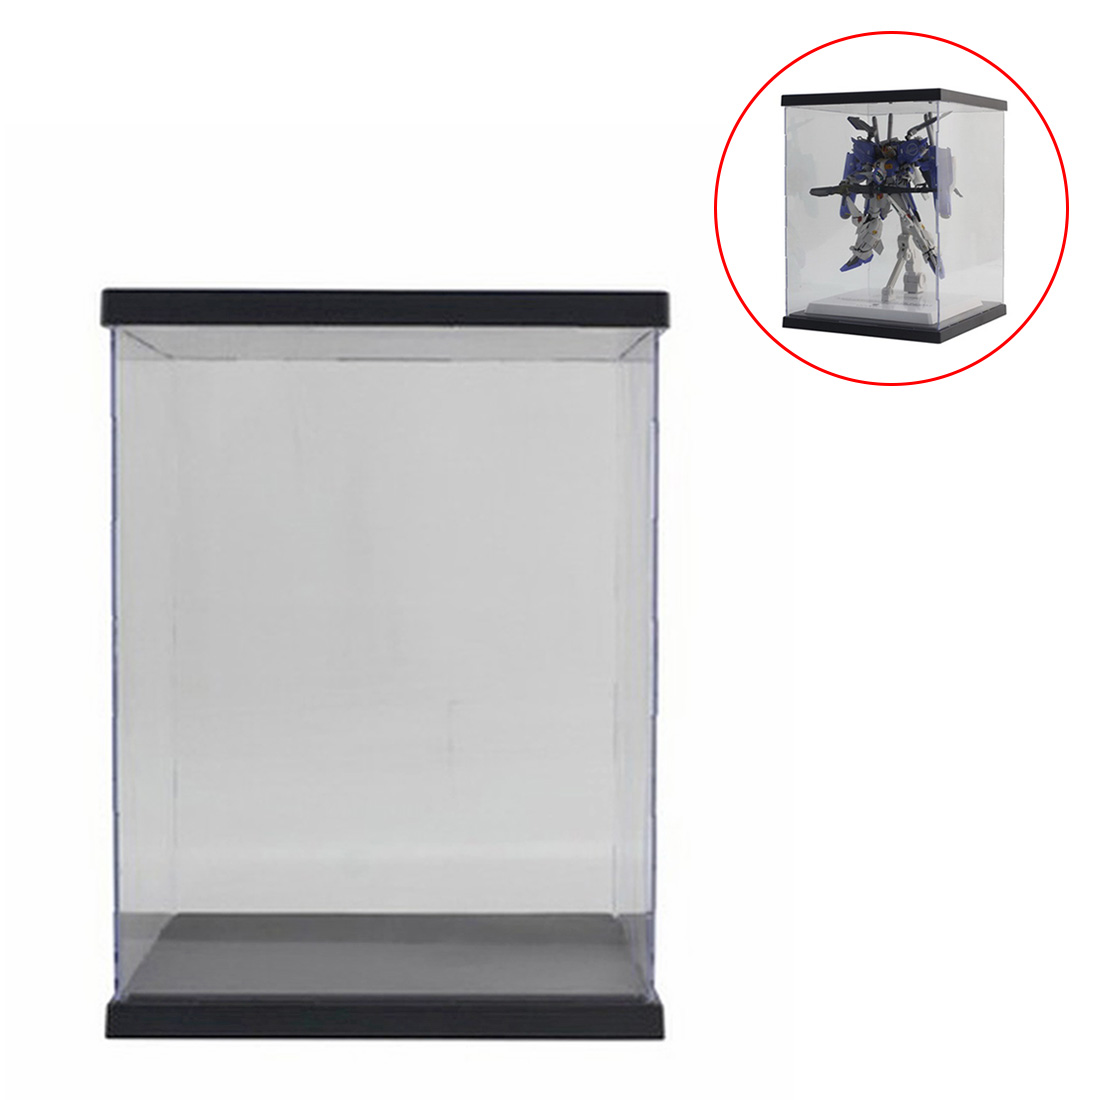 Transparent Acrylic Dustproof Display Box Show Box with Lights for Figure Model/<font><b>Gundam</b></font> for MG for RG for <font><b>BB</b></font> image